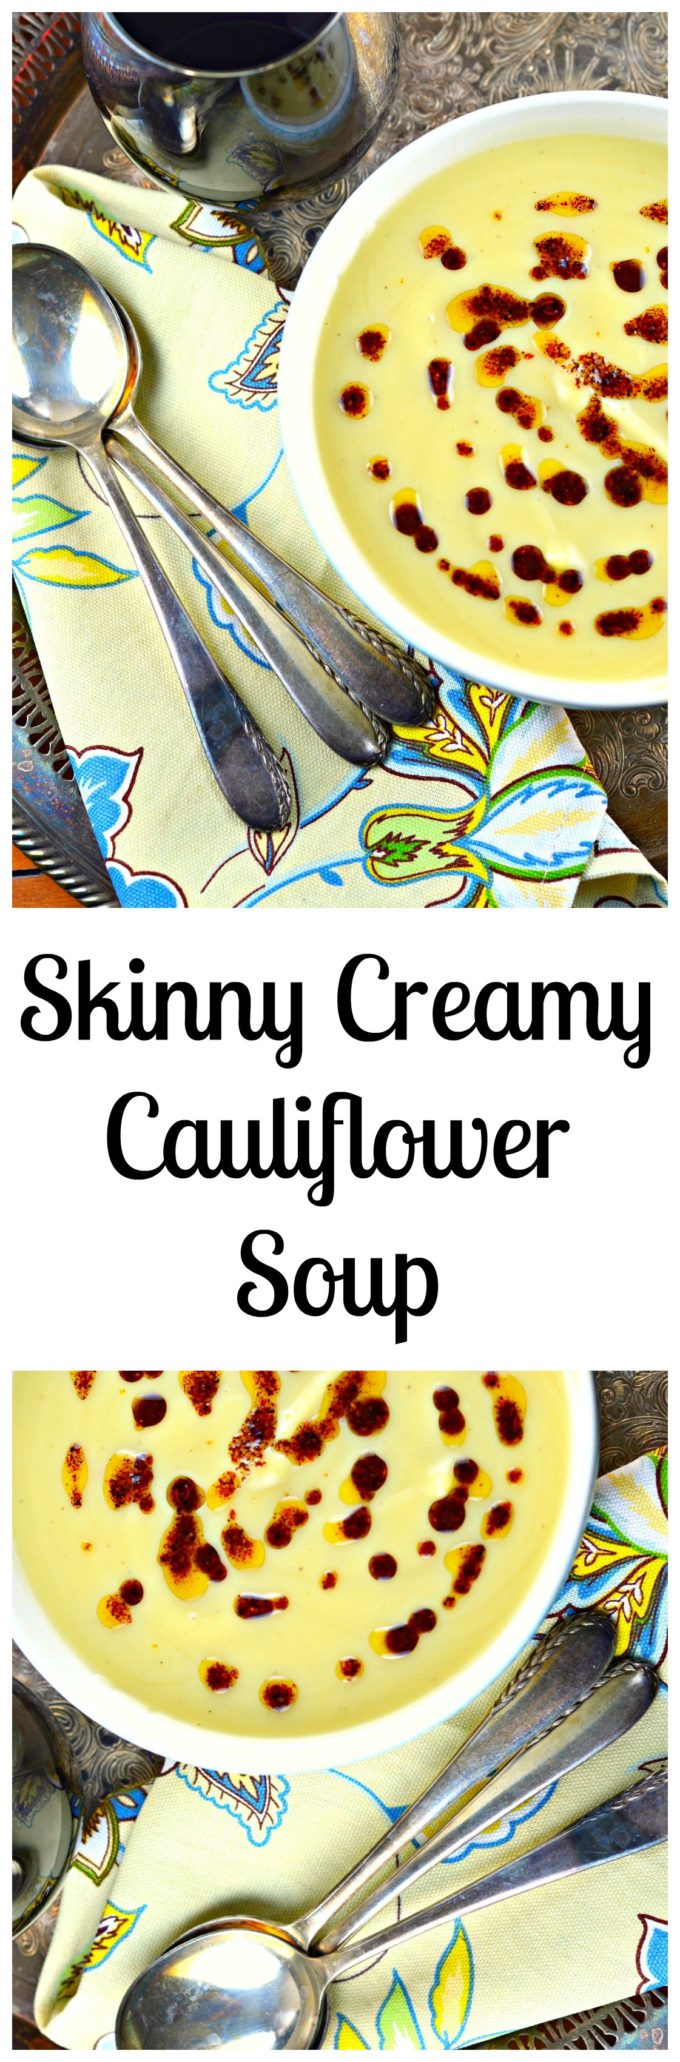 Skinny Creamy Cauliflower soup with lemon sumac oil. Rich and Creamy one cup of this quick and easy cauliflower soup is only 70 calories (without the sumac oil)